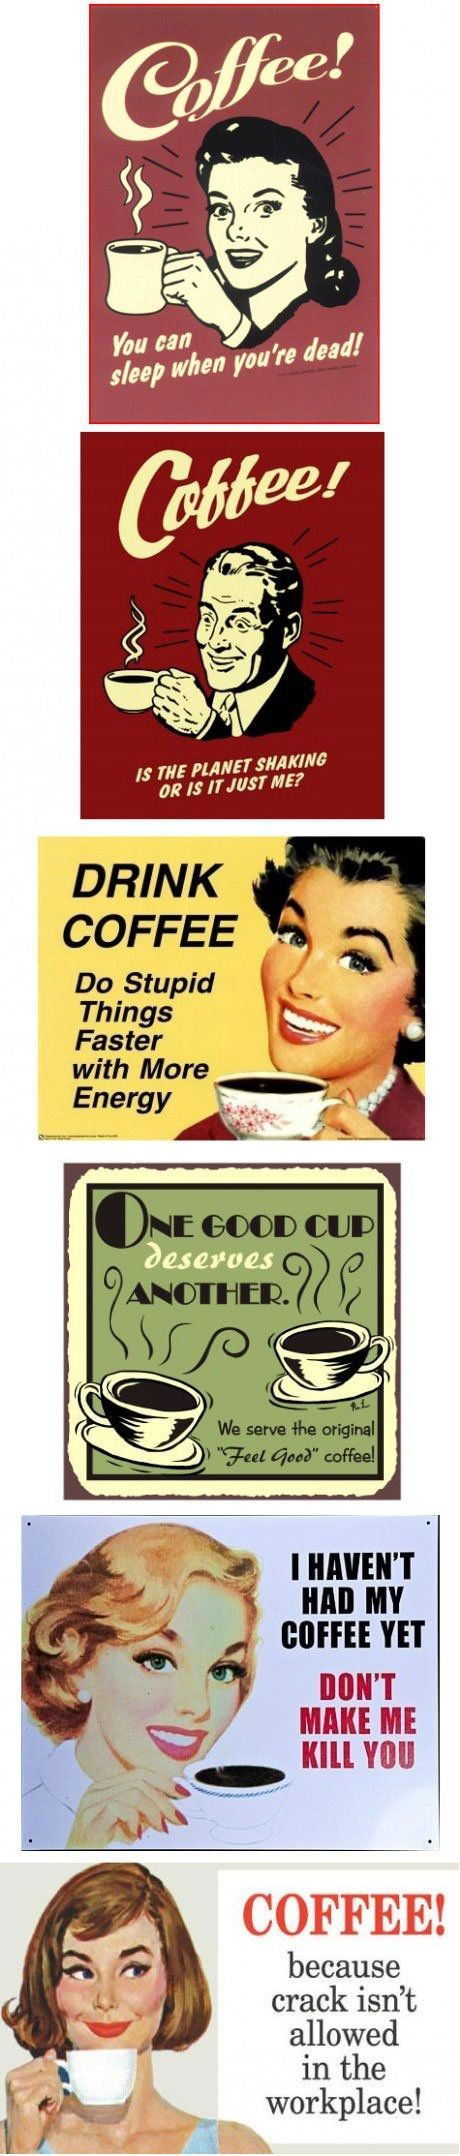 Coffee.: Laughing, Iv Memorial, True Love, My Life, Funny Ecards About Coff, Funny Stuff, Memorial Drinks, Good Mornings Humor Quotes, I Love Coffee